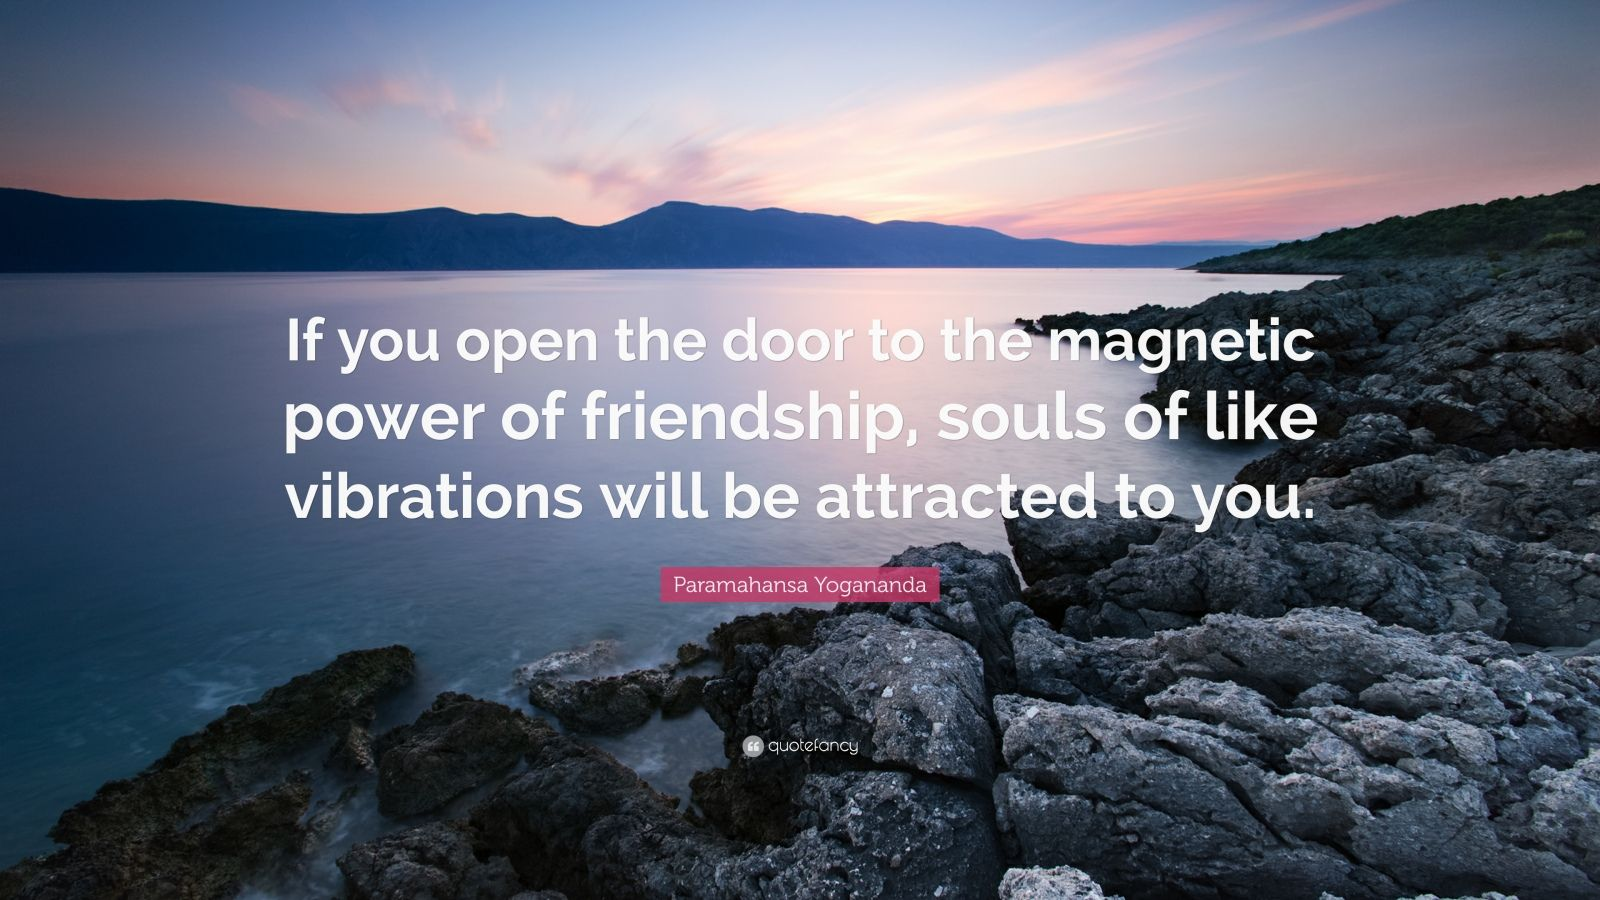 """Paramahansa Yogananda Quote: """"If you open the door to the magnetic power of friendship, souls of like vibrations will be attracted to you."""""""